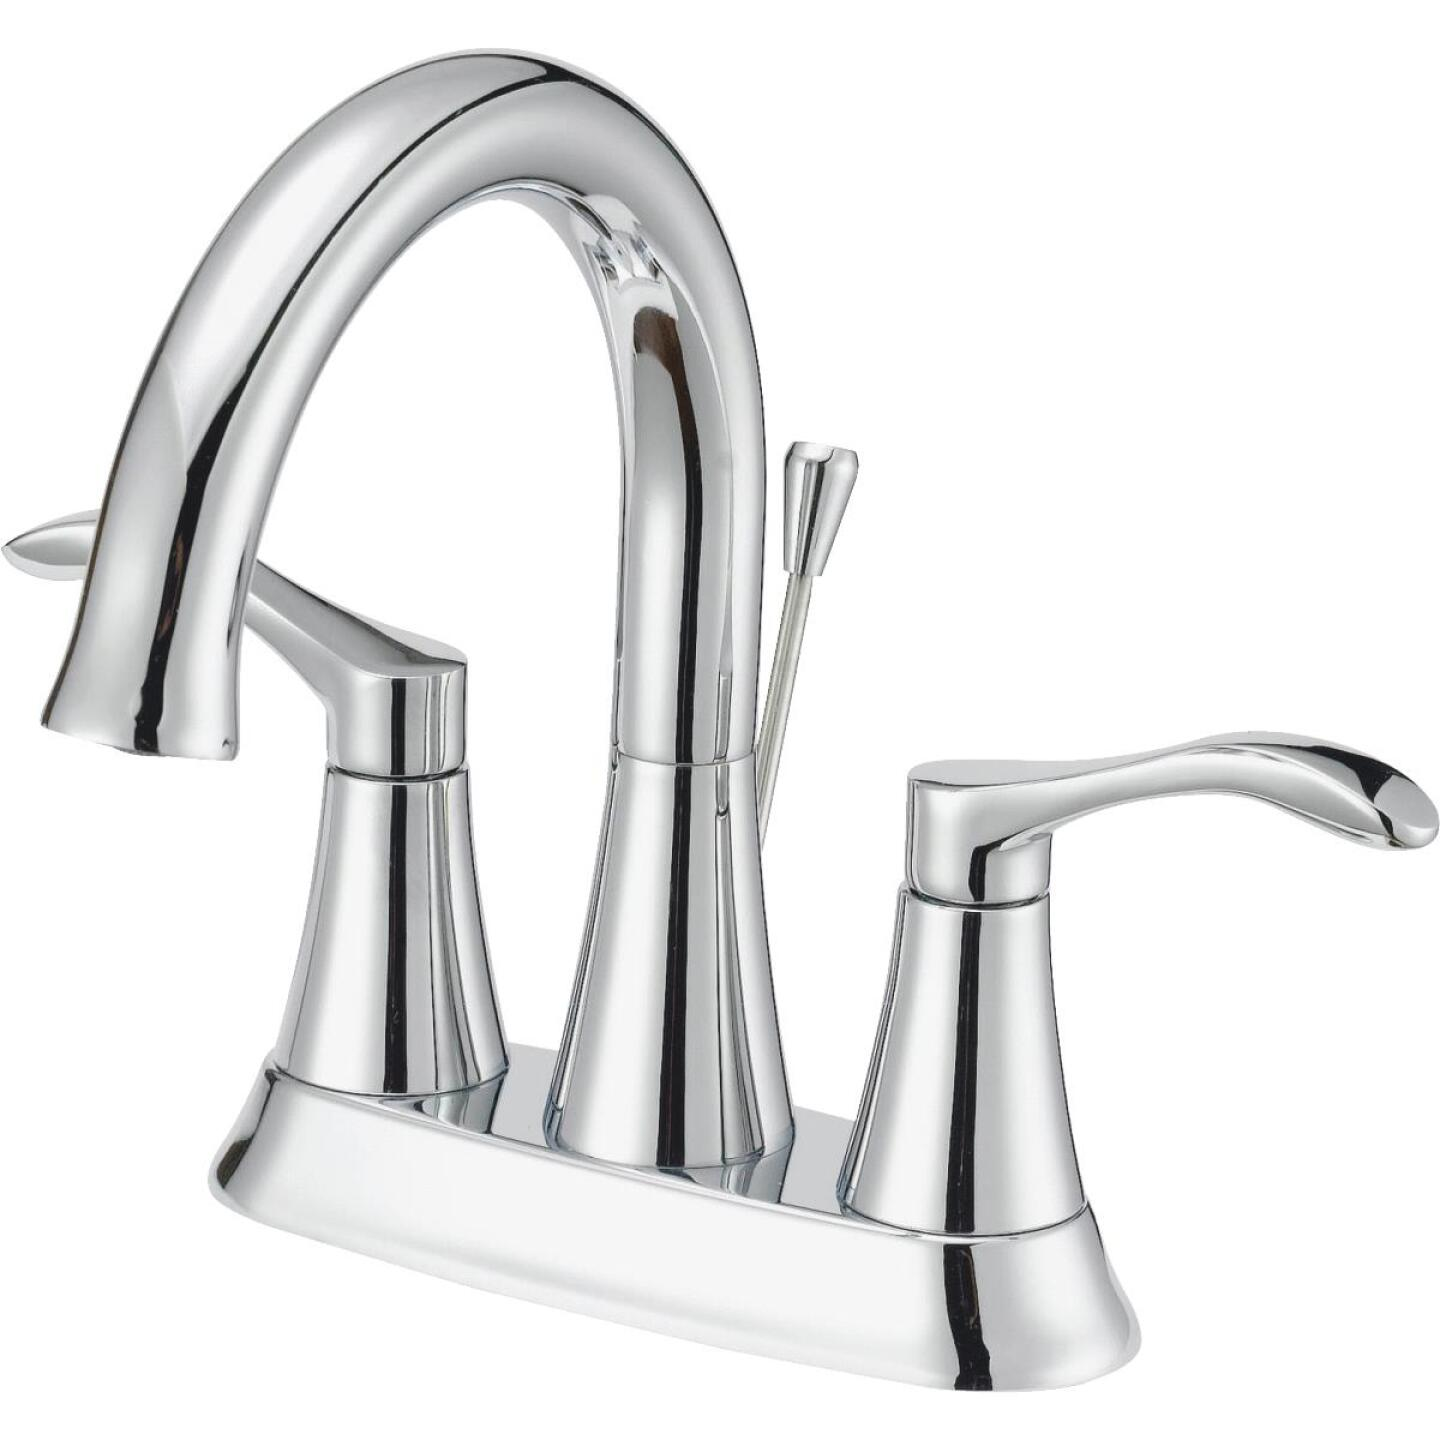 Home Impressions Chrome 2-Handle Lever 4 In. Centerset Bathroom Faucet with Pop-Up Image 1